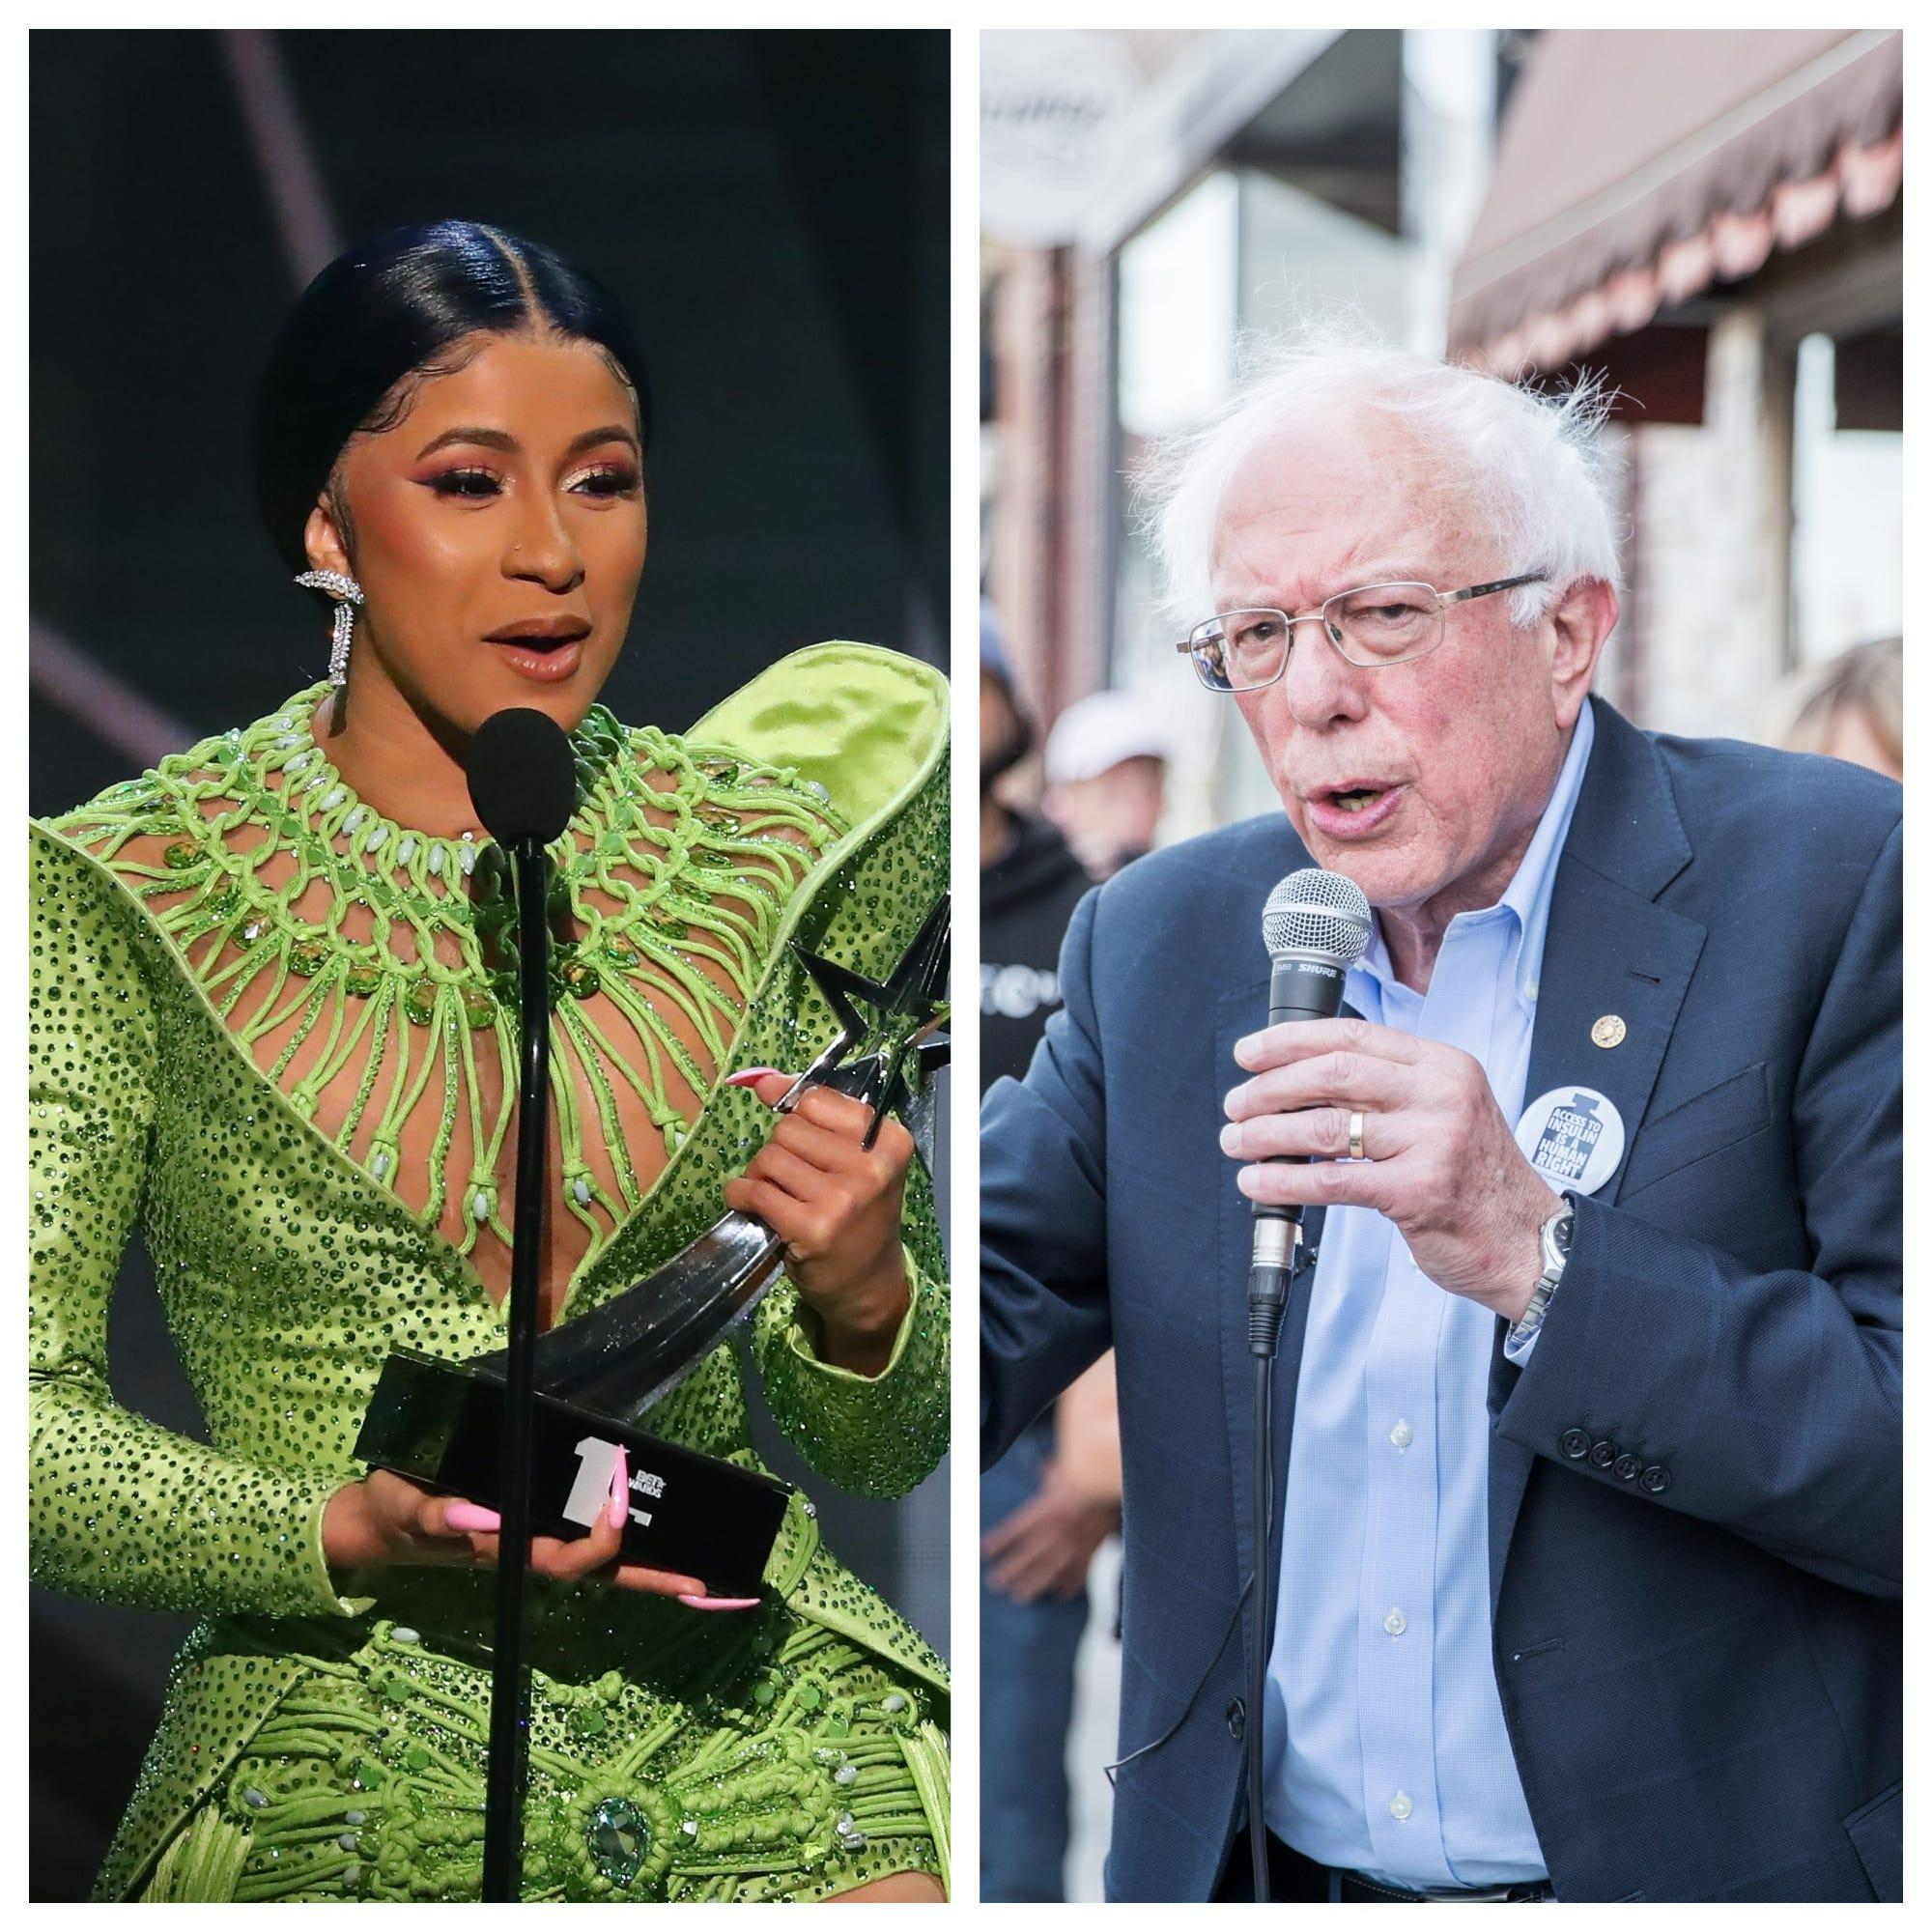 Cardi B to Bernie Sanders: 'What are we going to do about wages in America?'